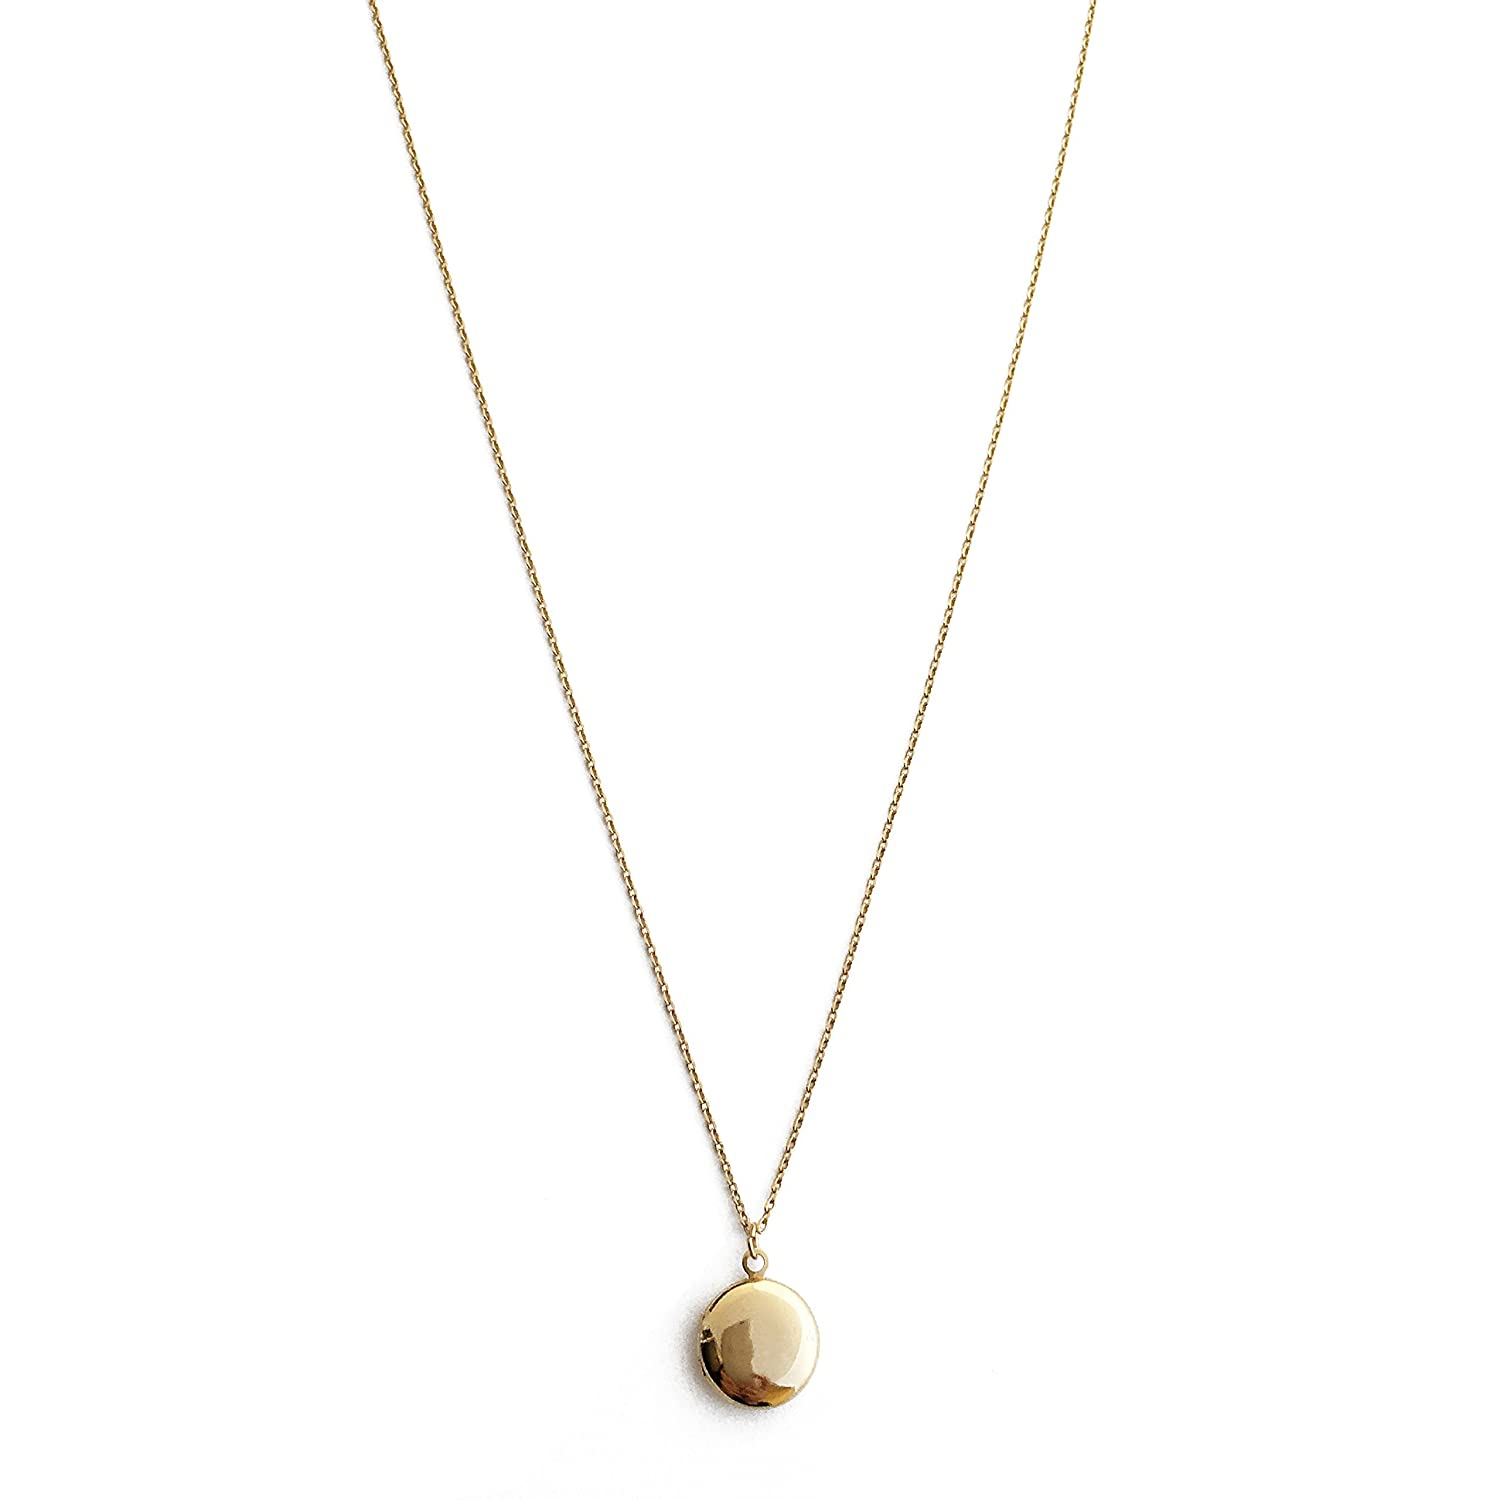 HONEYCAT Keepsake Locket Necklace in Gold, Rose Gold, or Silver | Minimalist, Delicate Jewelry locket-n-g